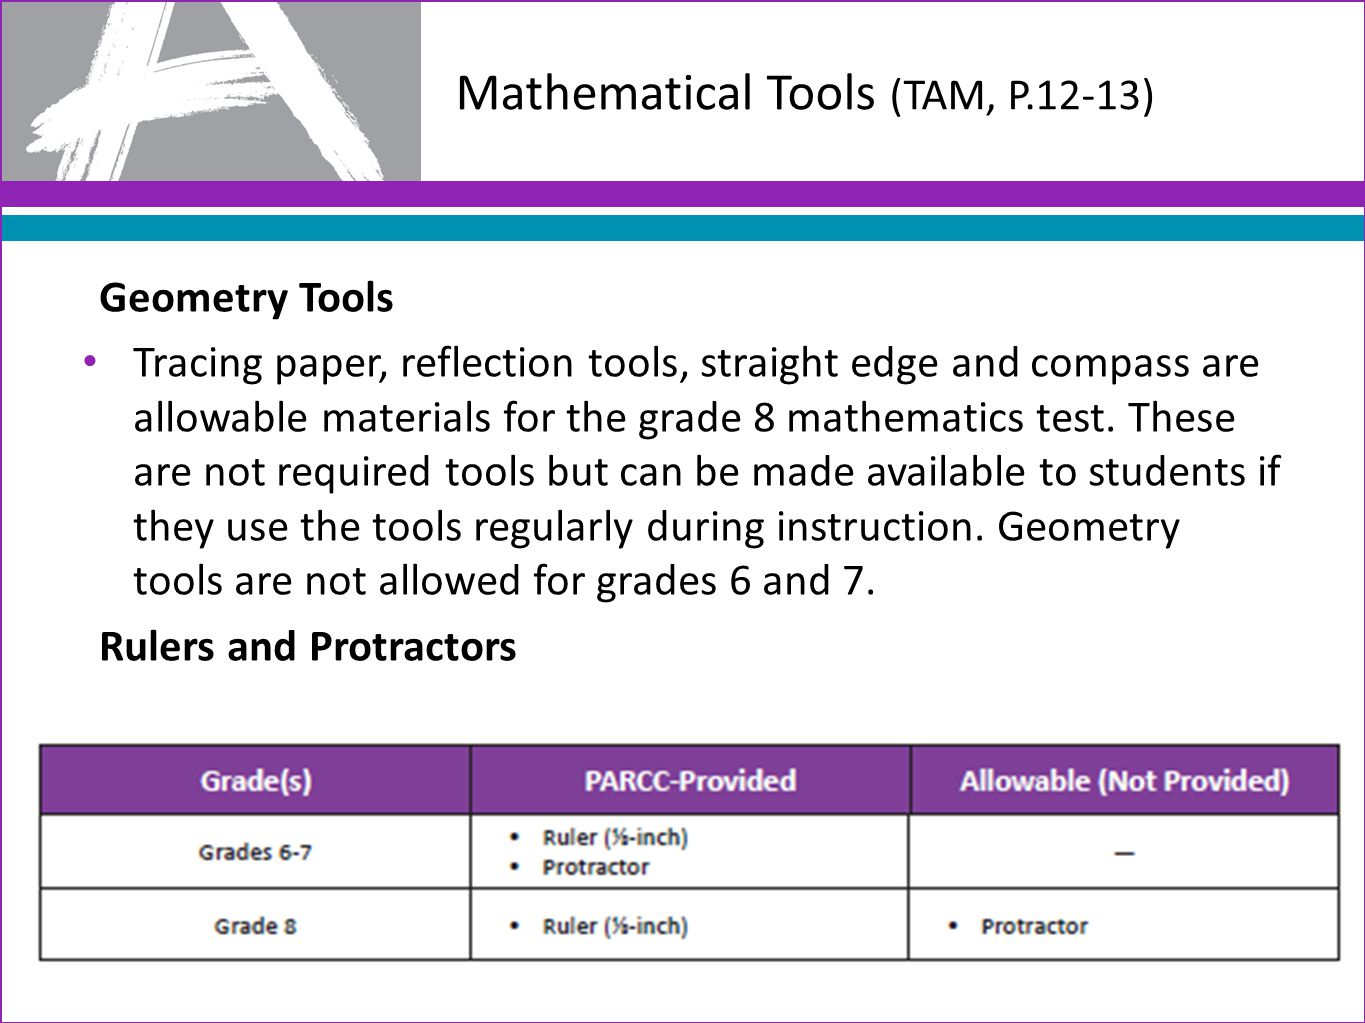 Mathematical Tools (TAM, P.12-13) Geometry Tools Tracing paper, reflection tools, straight edge and compass are allowable materials for the grade 8 mathematics test.